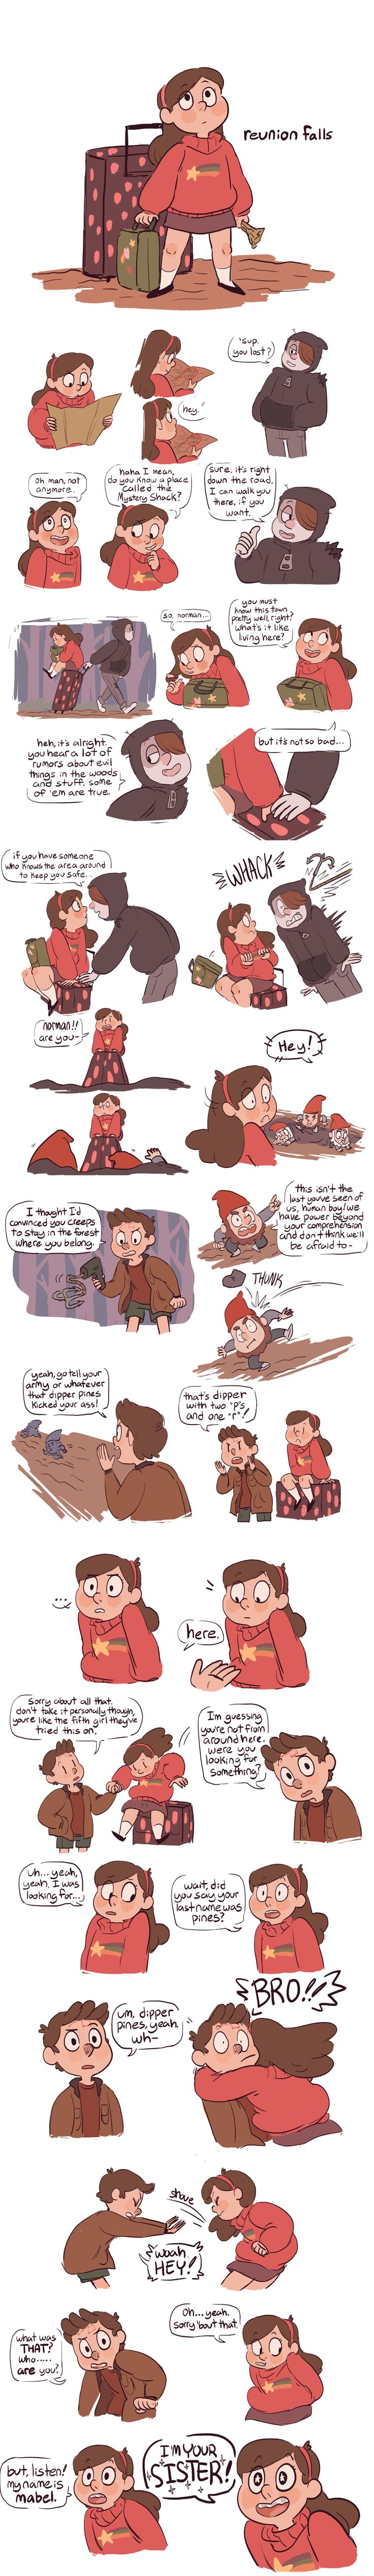 Reunion Falls AU - a gravity falls au in which mabel and dipper, for (possibly supernatural) reasons unknown, were separated at birth, and while mabel grew up as an only child in her normal home with normal parents, dipper grew up in gravity falls raised by grunkle stan. but at age 12 mabel learns of dipper's existence and decides to pay her long lost twin a surprise visit, completely unaware of the kind of wacky business going on...